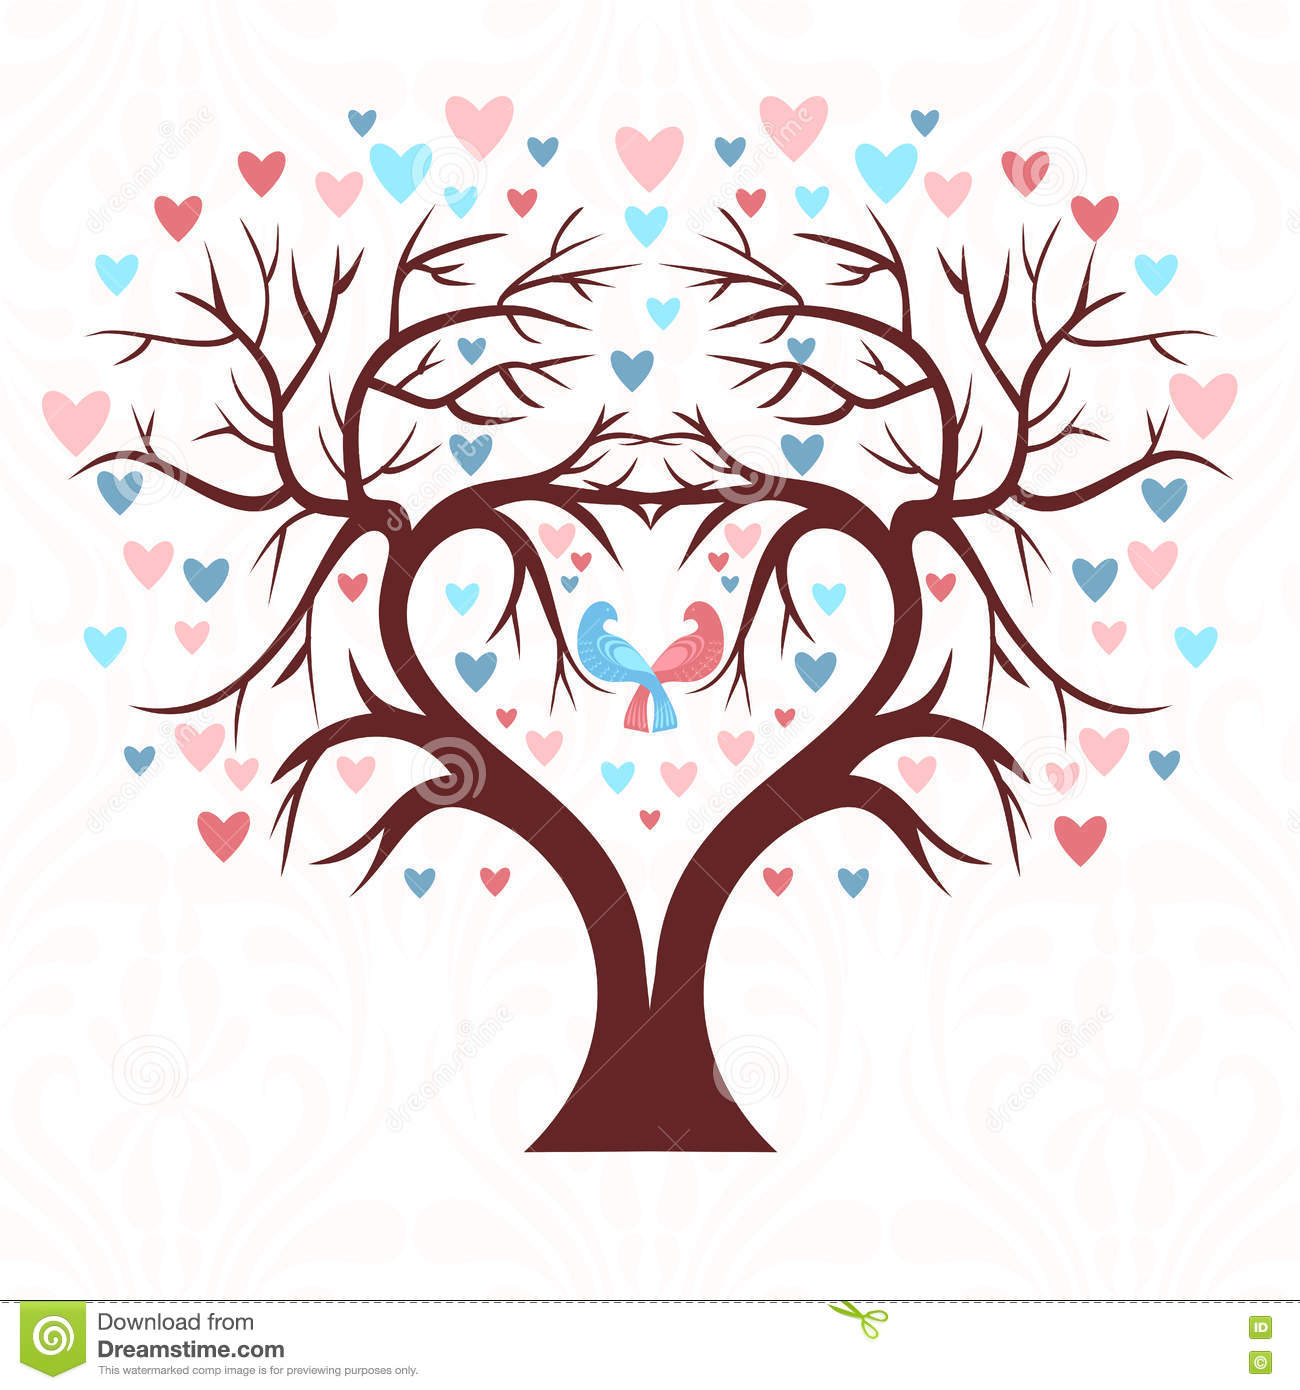 Wedding Tree Watercolor Clipart: The Wedding Tree In The Shape Of A Heart With Two Birds